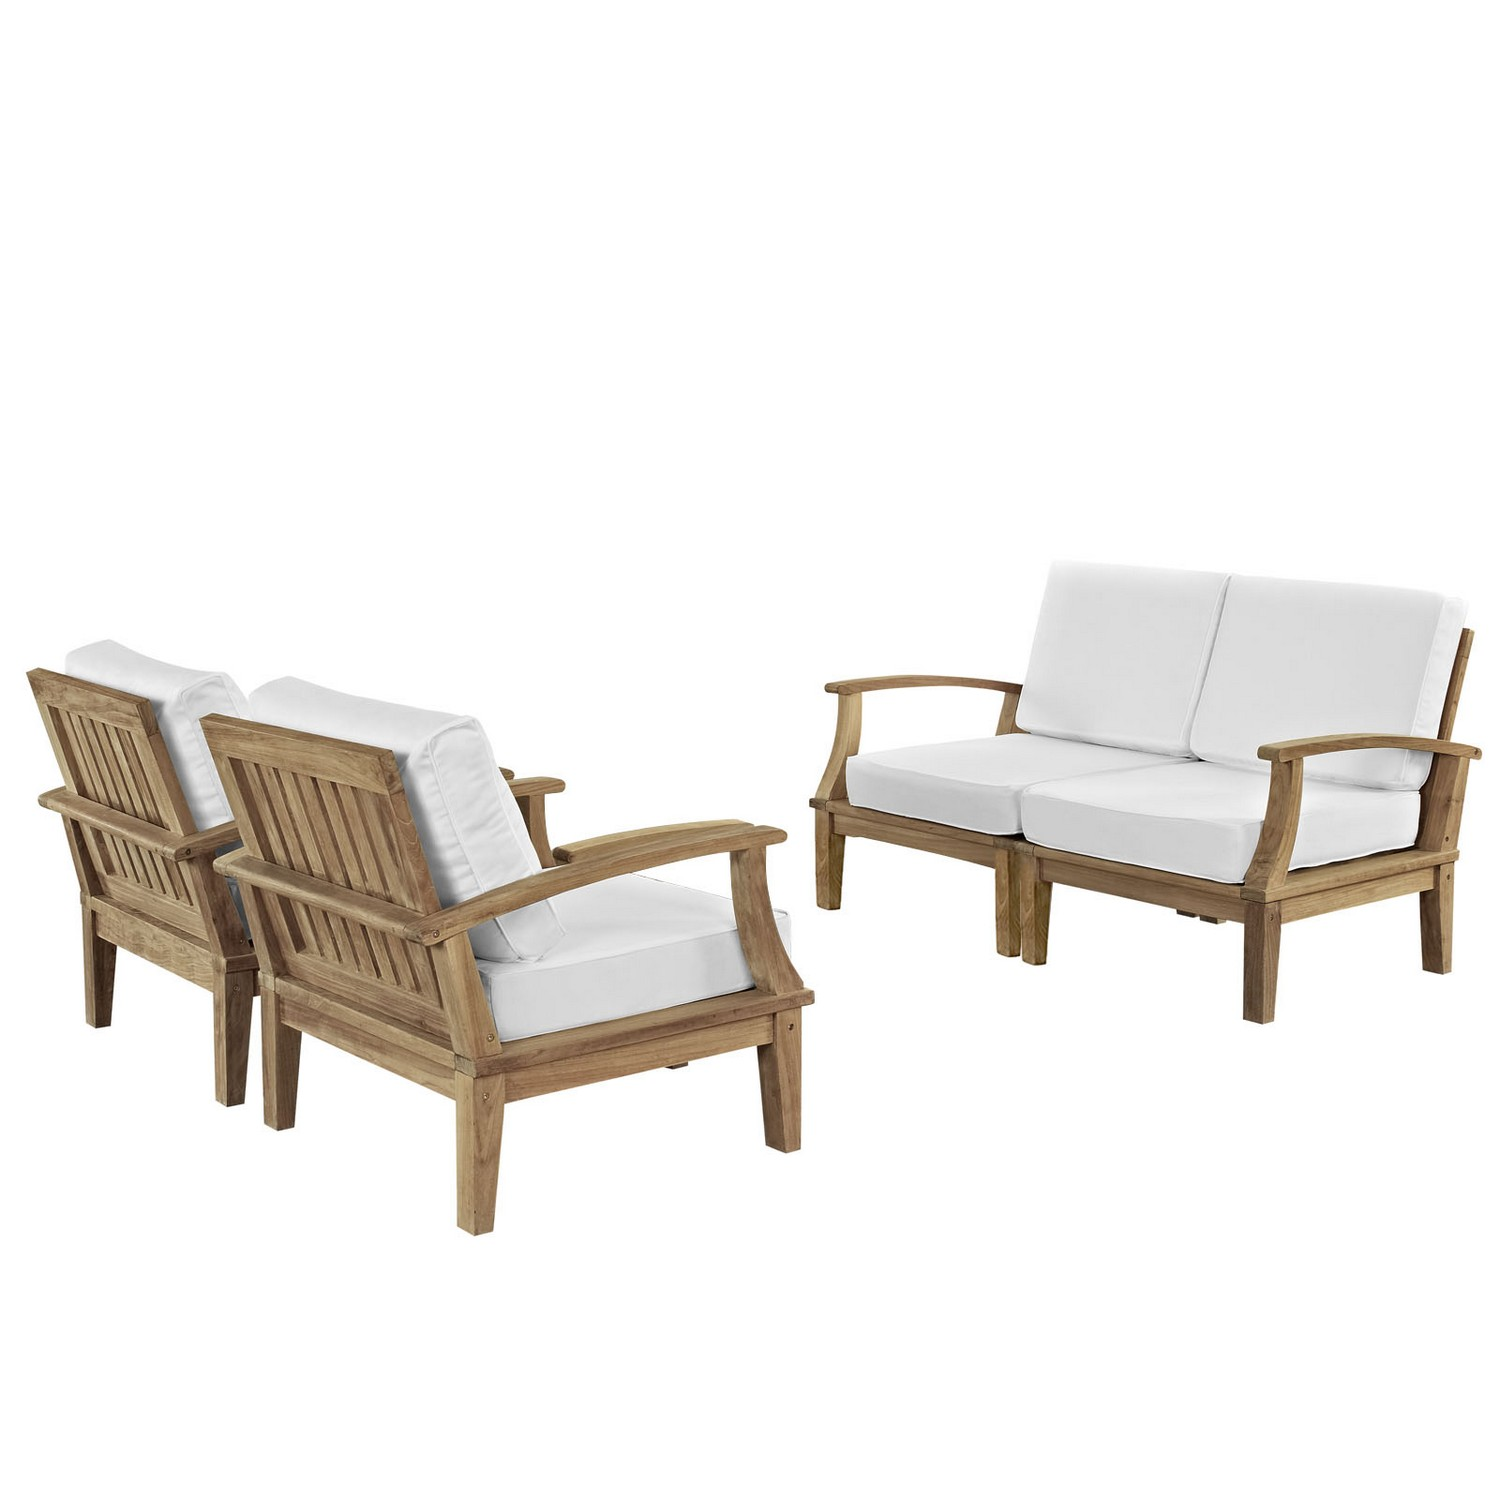 Modway Marina 4 Piece Outdoor Patio Teak Sofa Set - Natural White